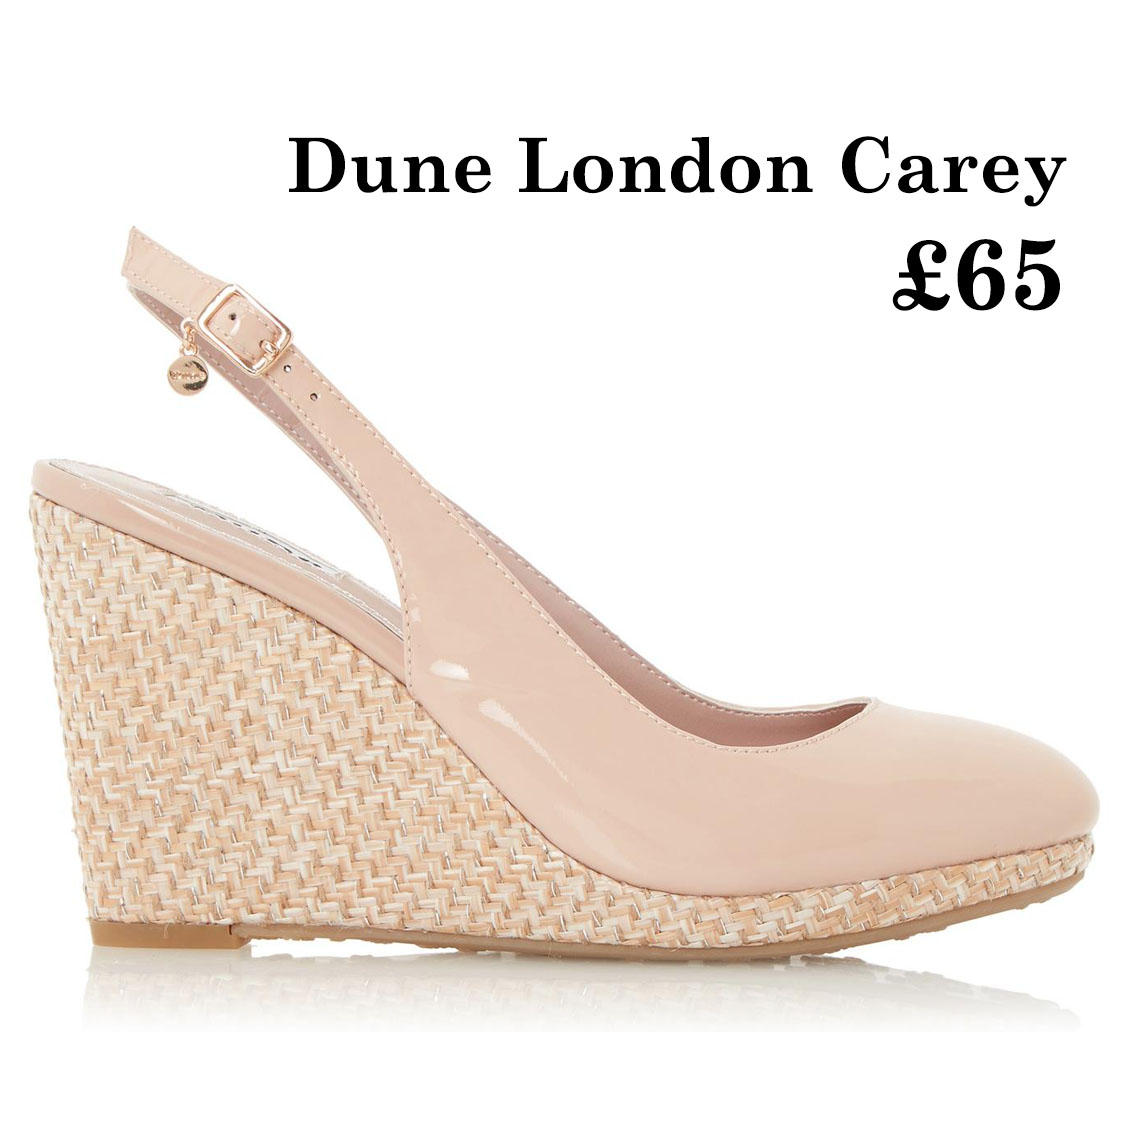 Dune London Carey